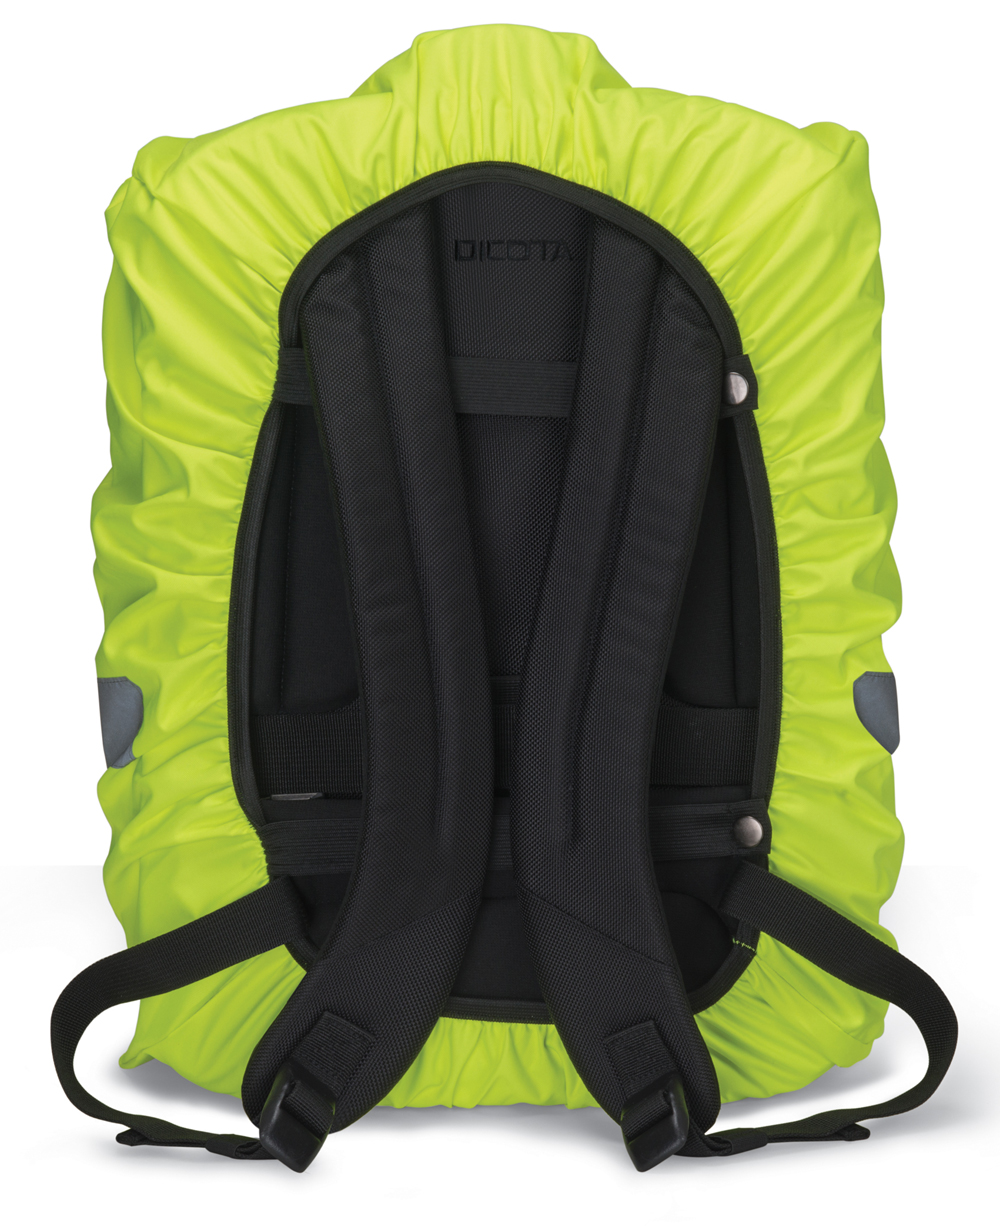 cc6741f15b4 Backpack Raincover – Slimme Producten